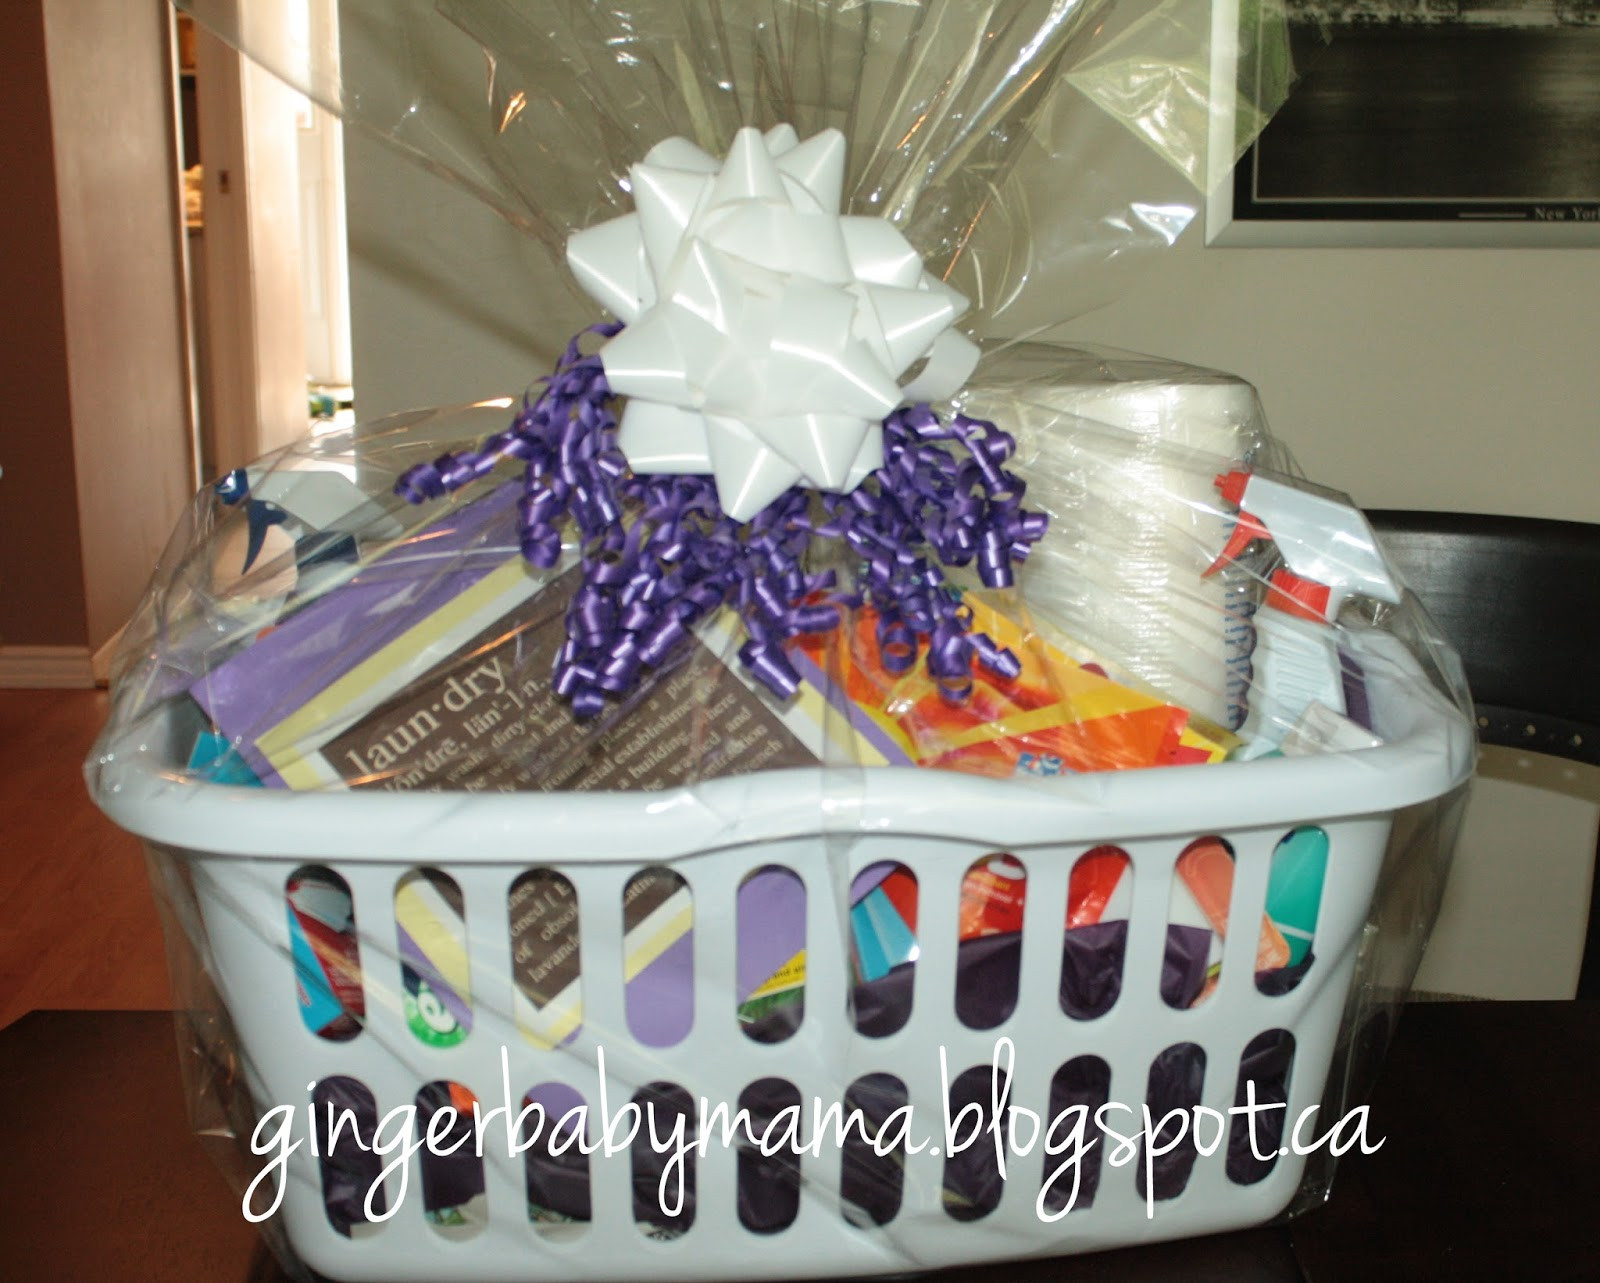 Best ideas about Bridal Shower Gift Ideas . Save or Pin GingerBabyMama Fun Practical Bridal Shower Gift Now.